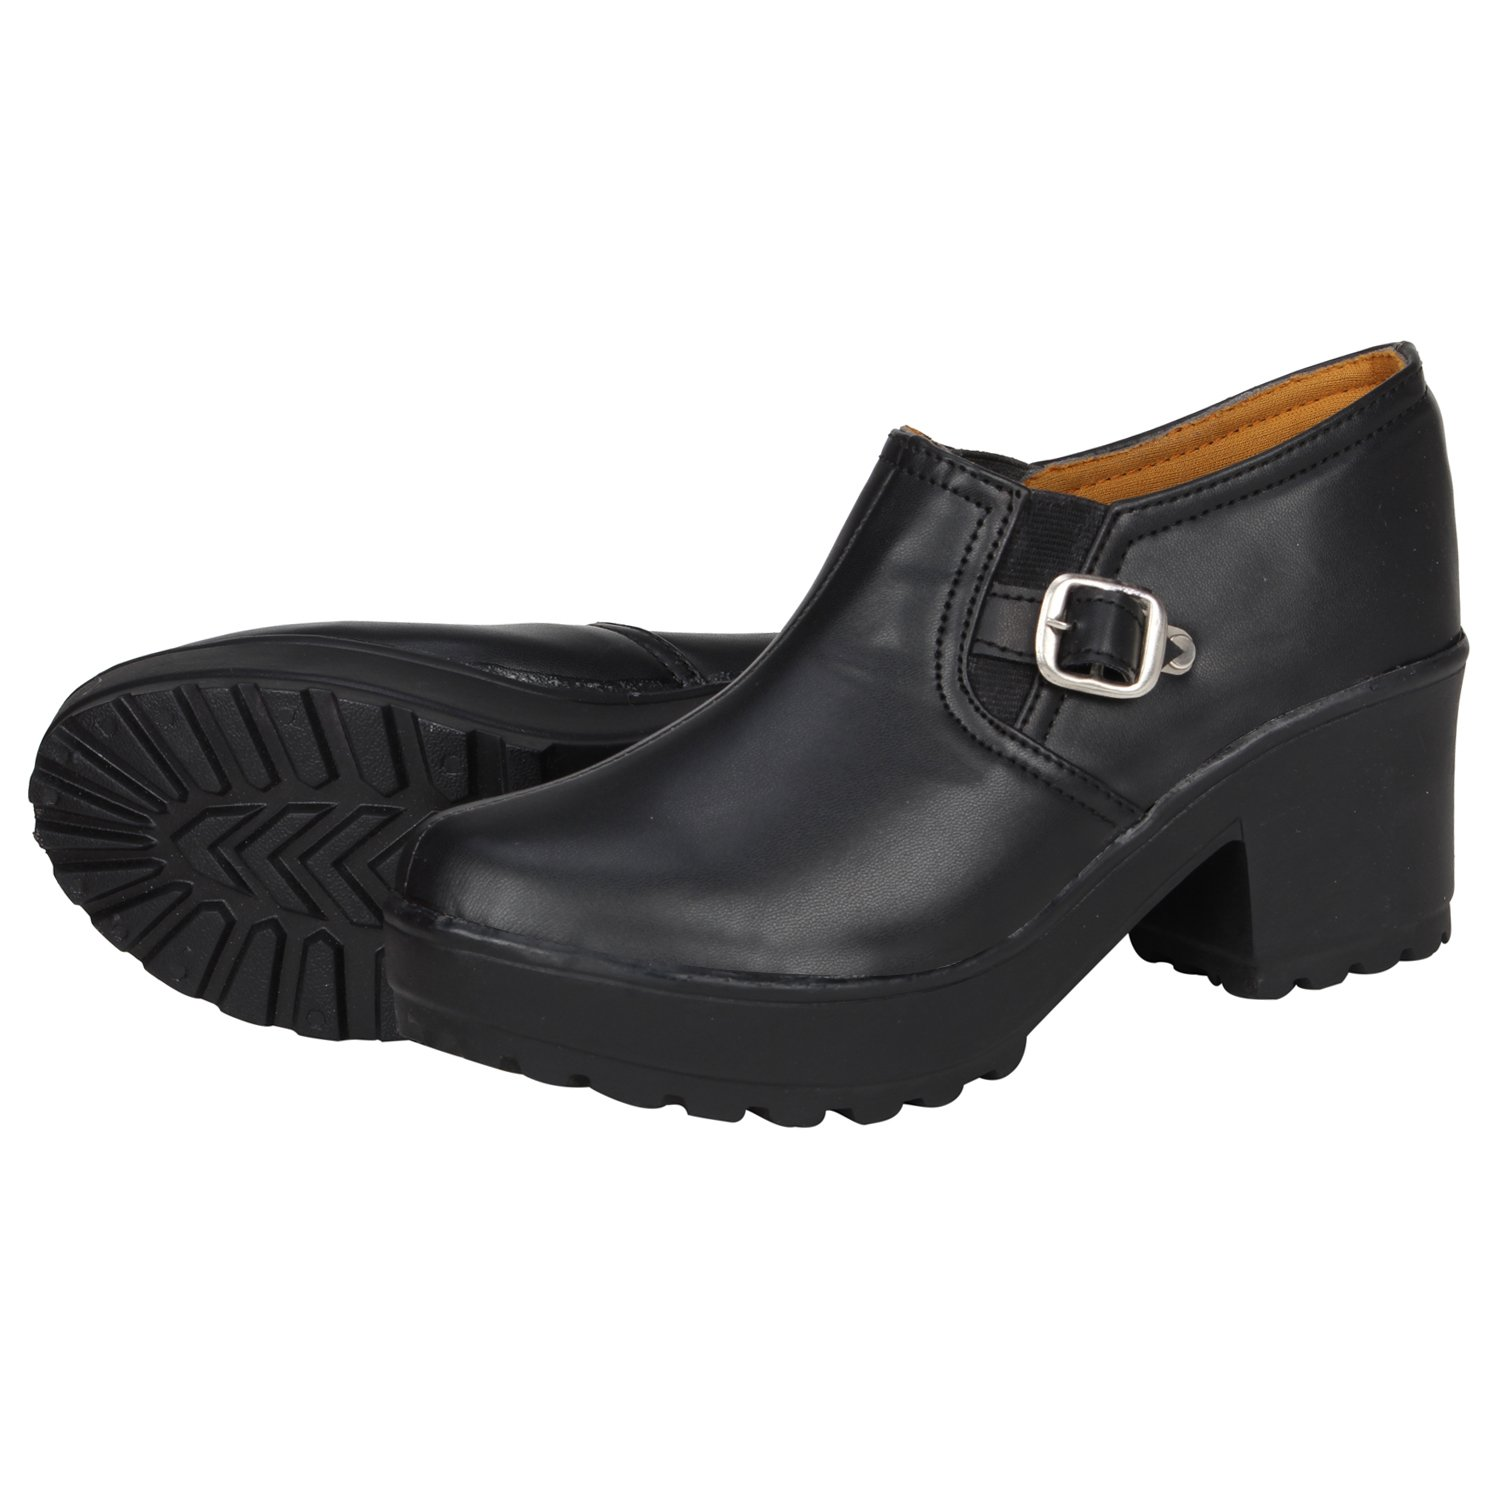 FASHIMO Formal Shoes for Women's and